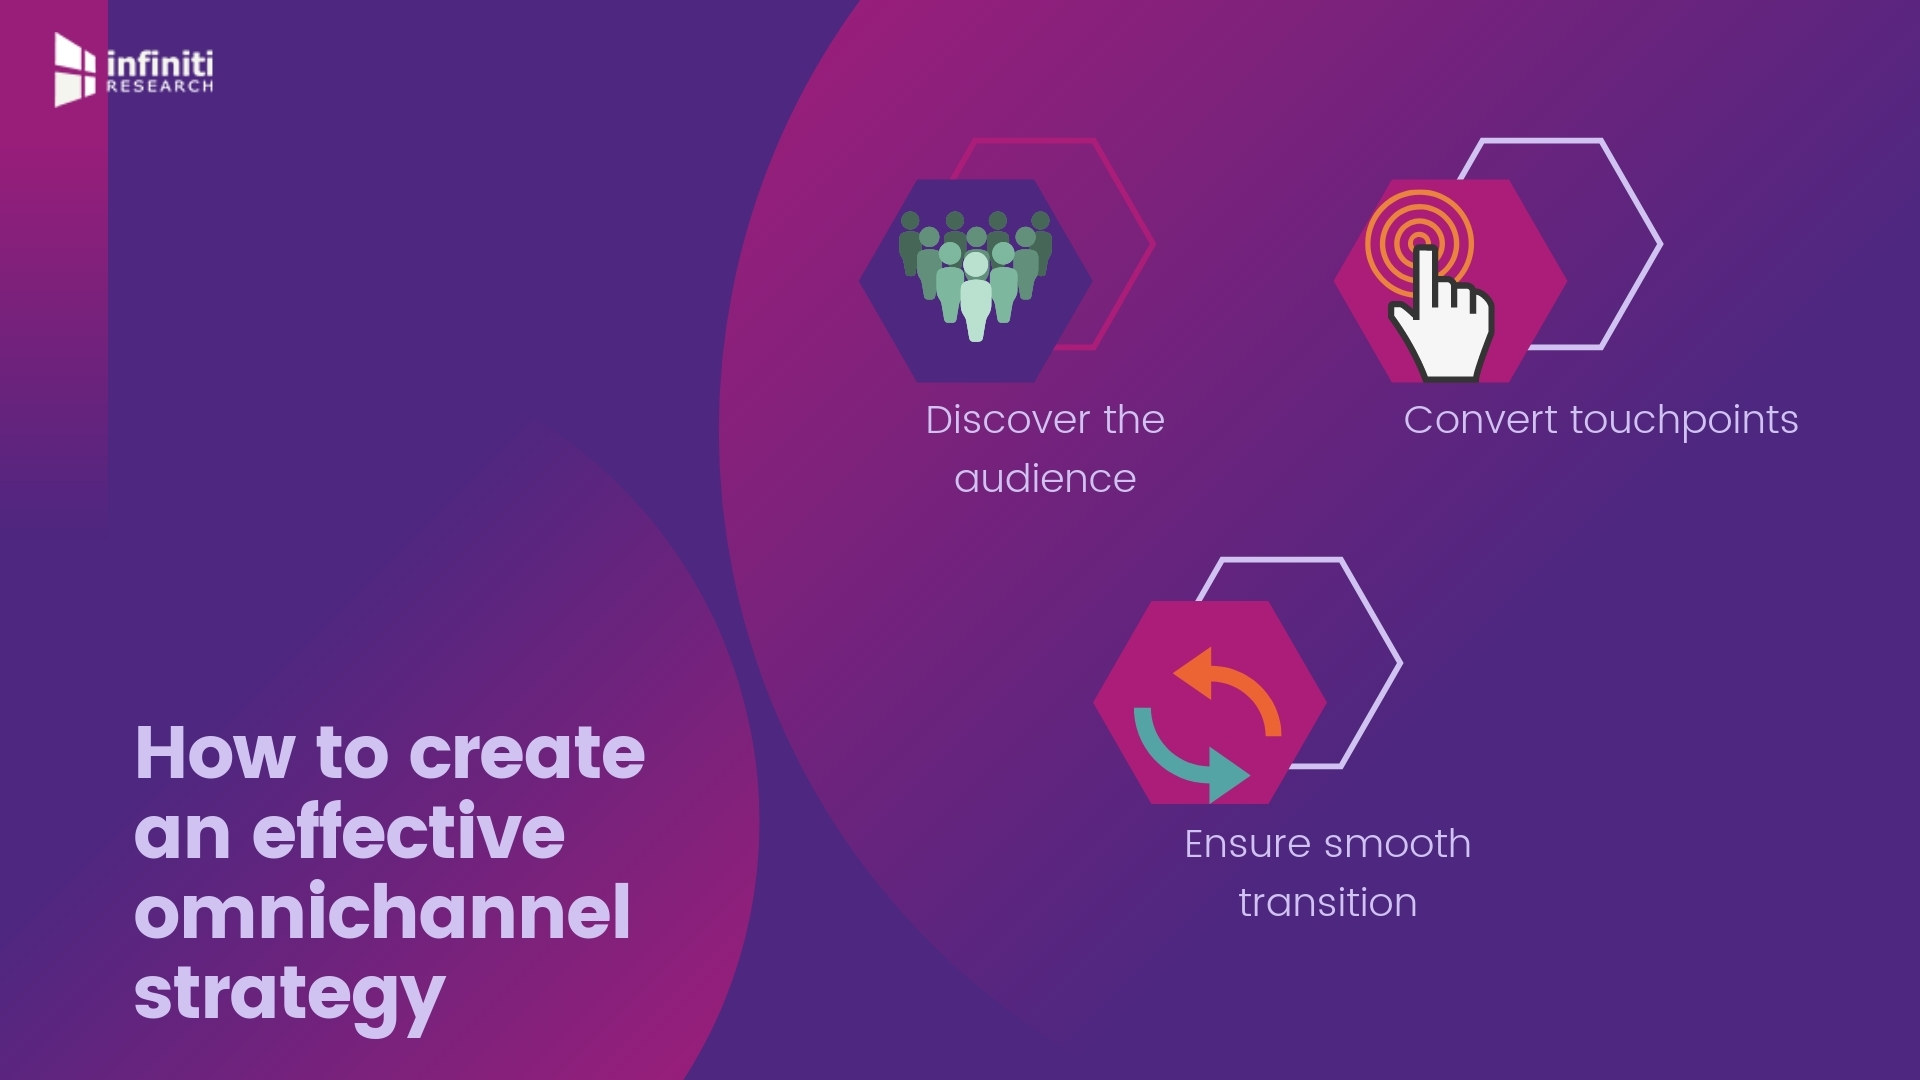 Creating a Rich Omnichannel Experience for Your Customers 1920x1080